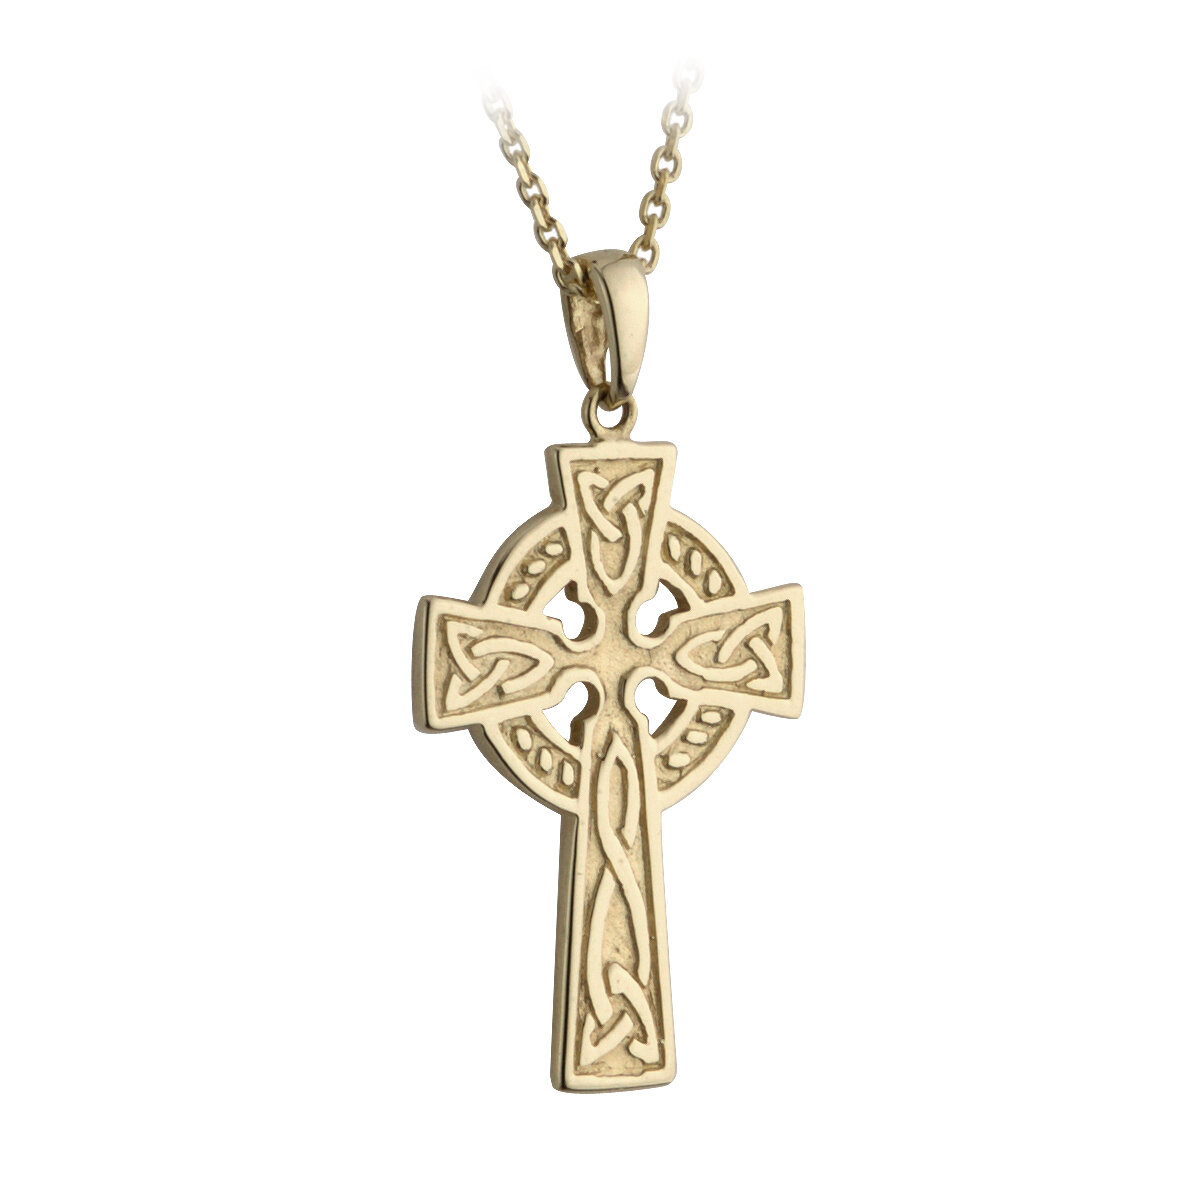 10k gold small double sided cross pendant s44648 from Solvar